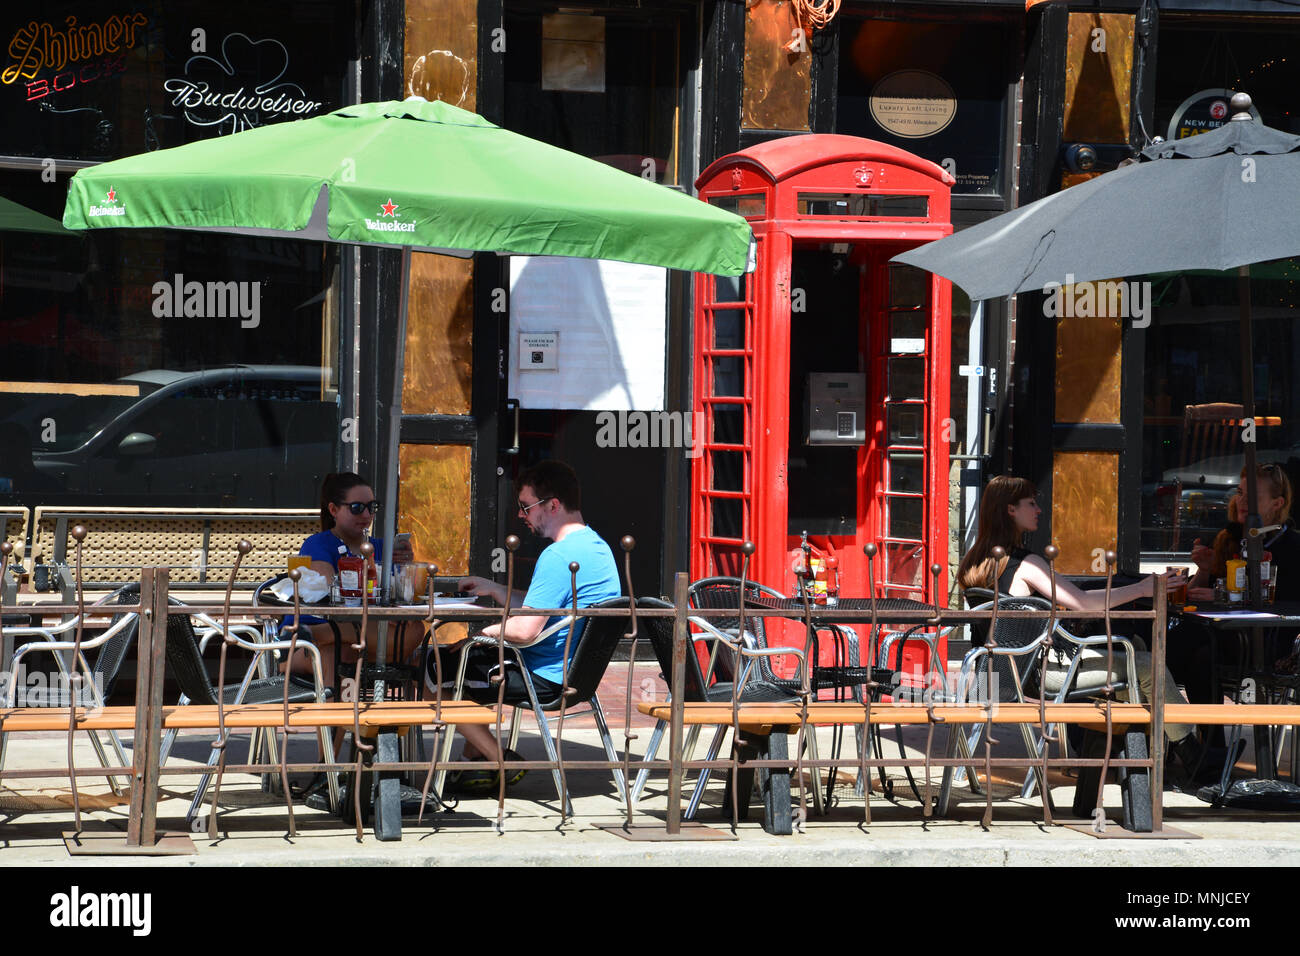 Patrons drink at a sidewalk cafe in the trendy Wicker Park neighborhood of Chicago. - Stock Image